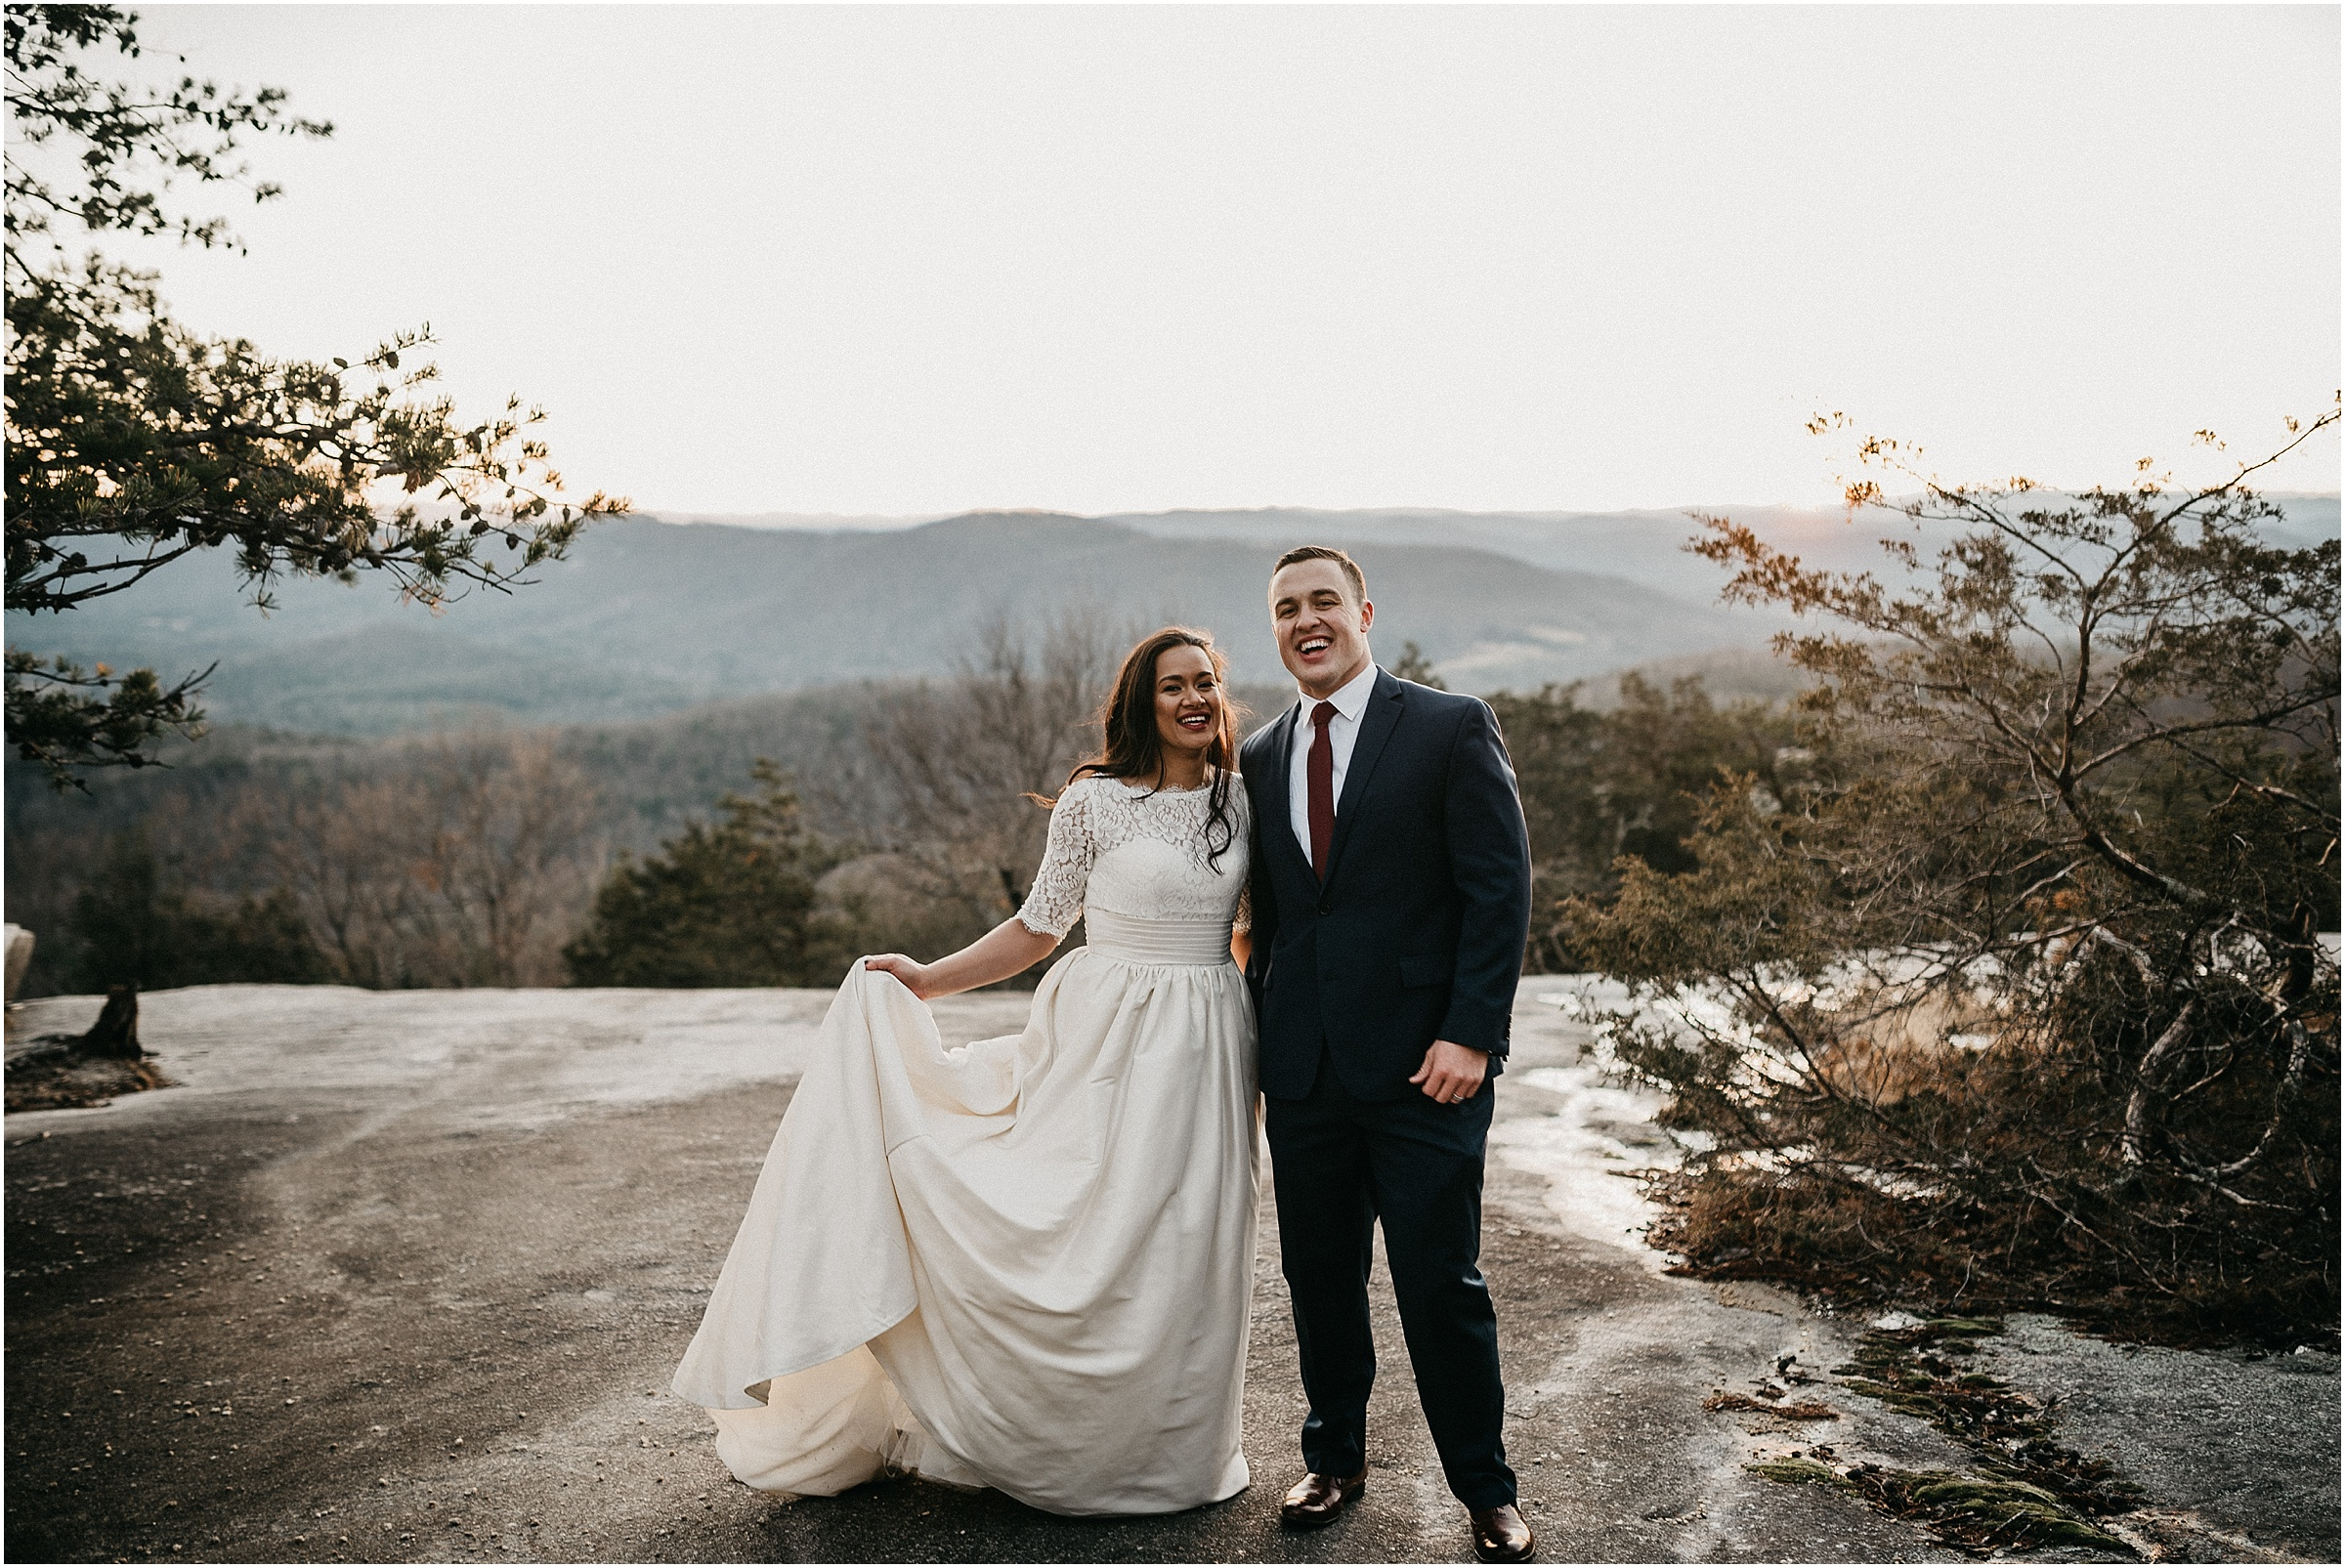 Stone_Mountain_NC_Elopement_62.JPG